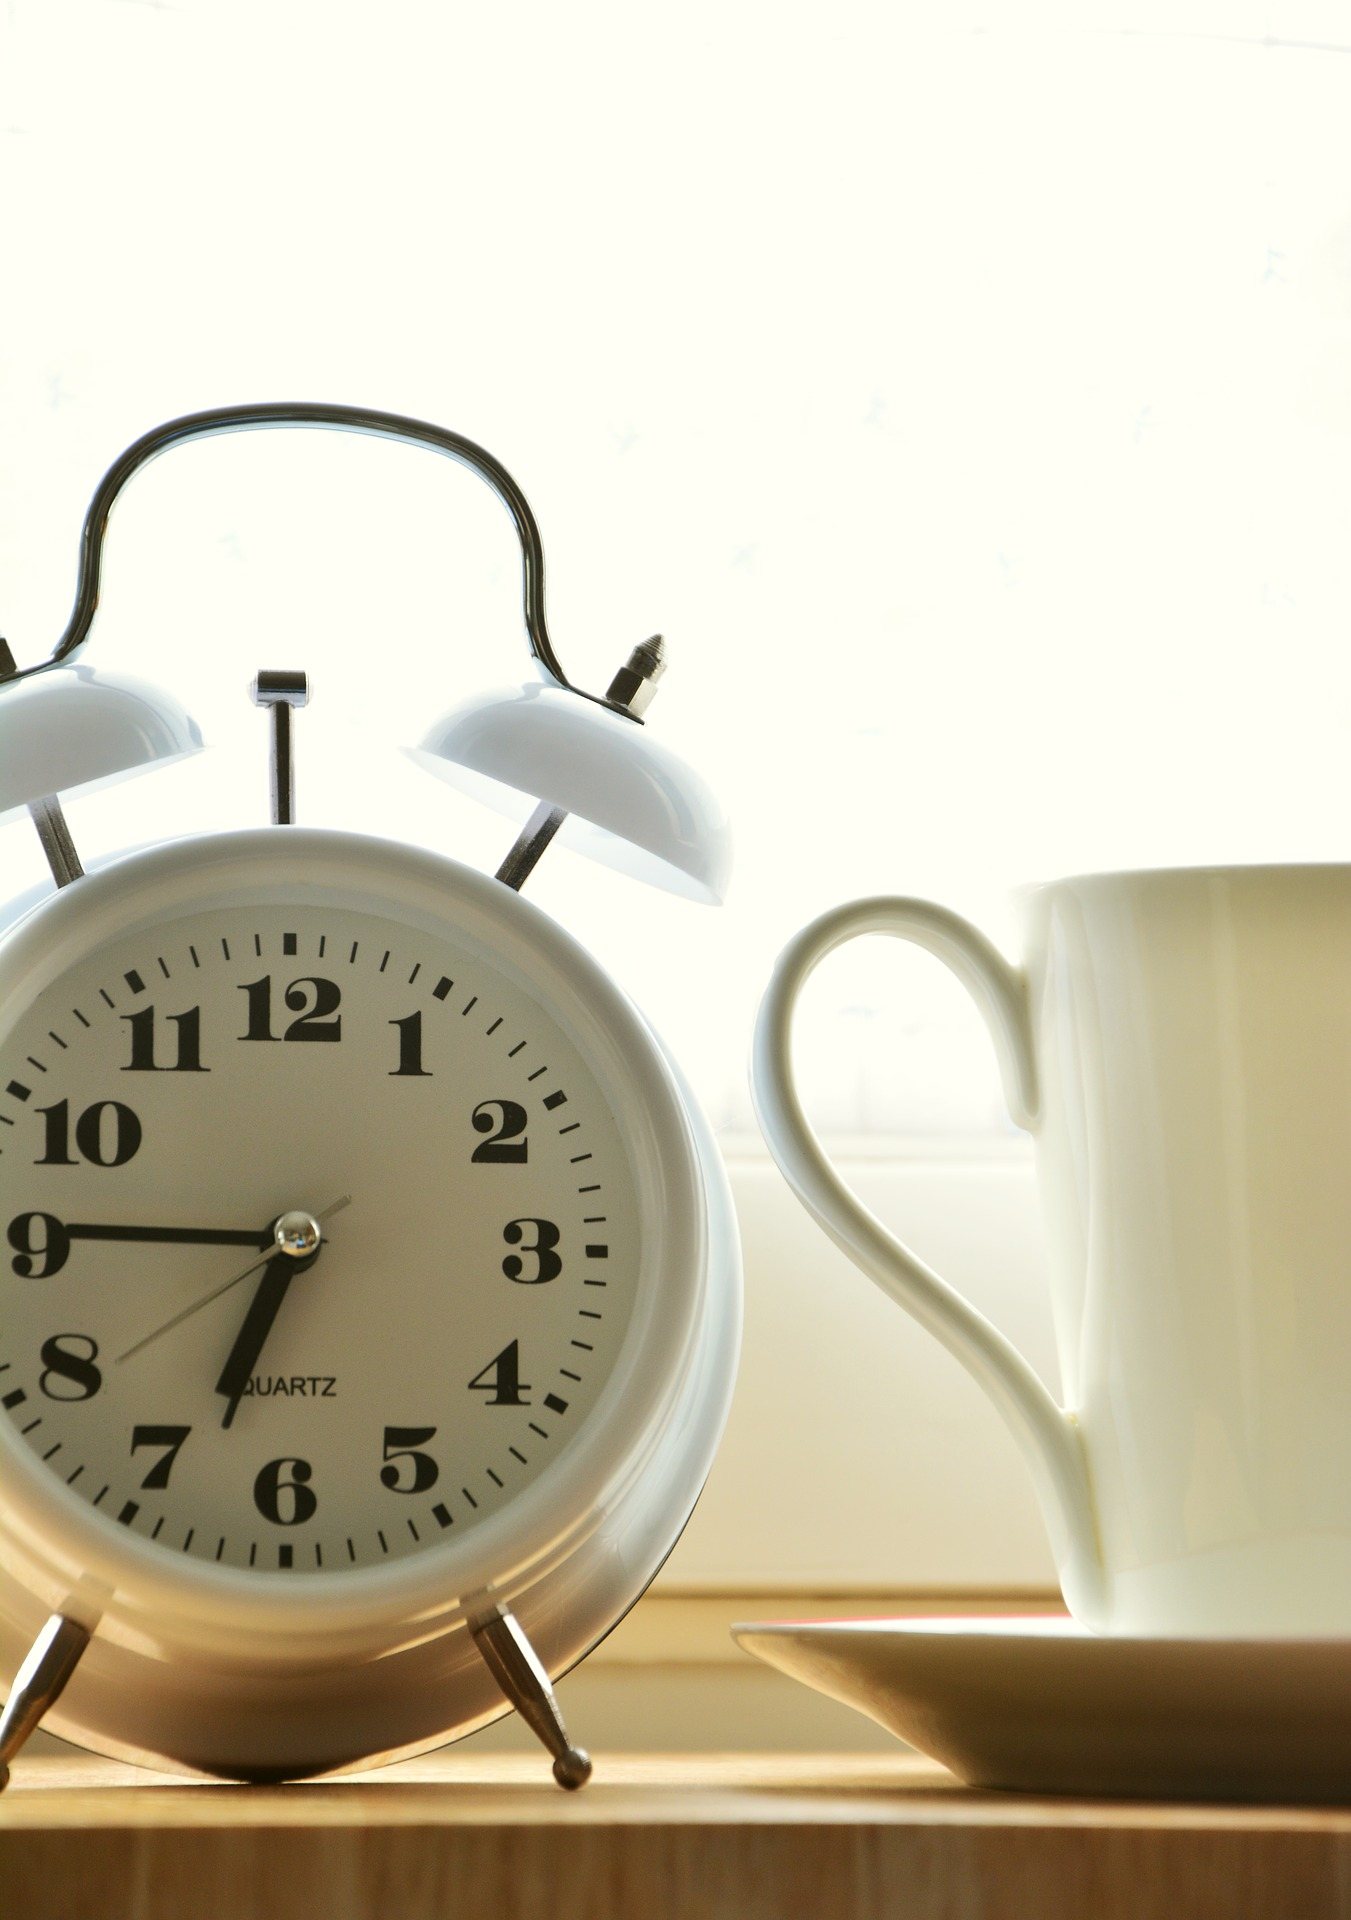 Photo of an alarm clock next to a steaming mug.